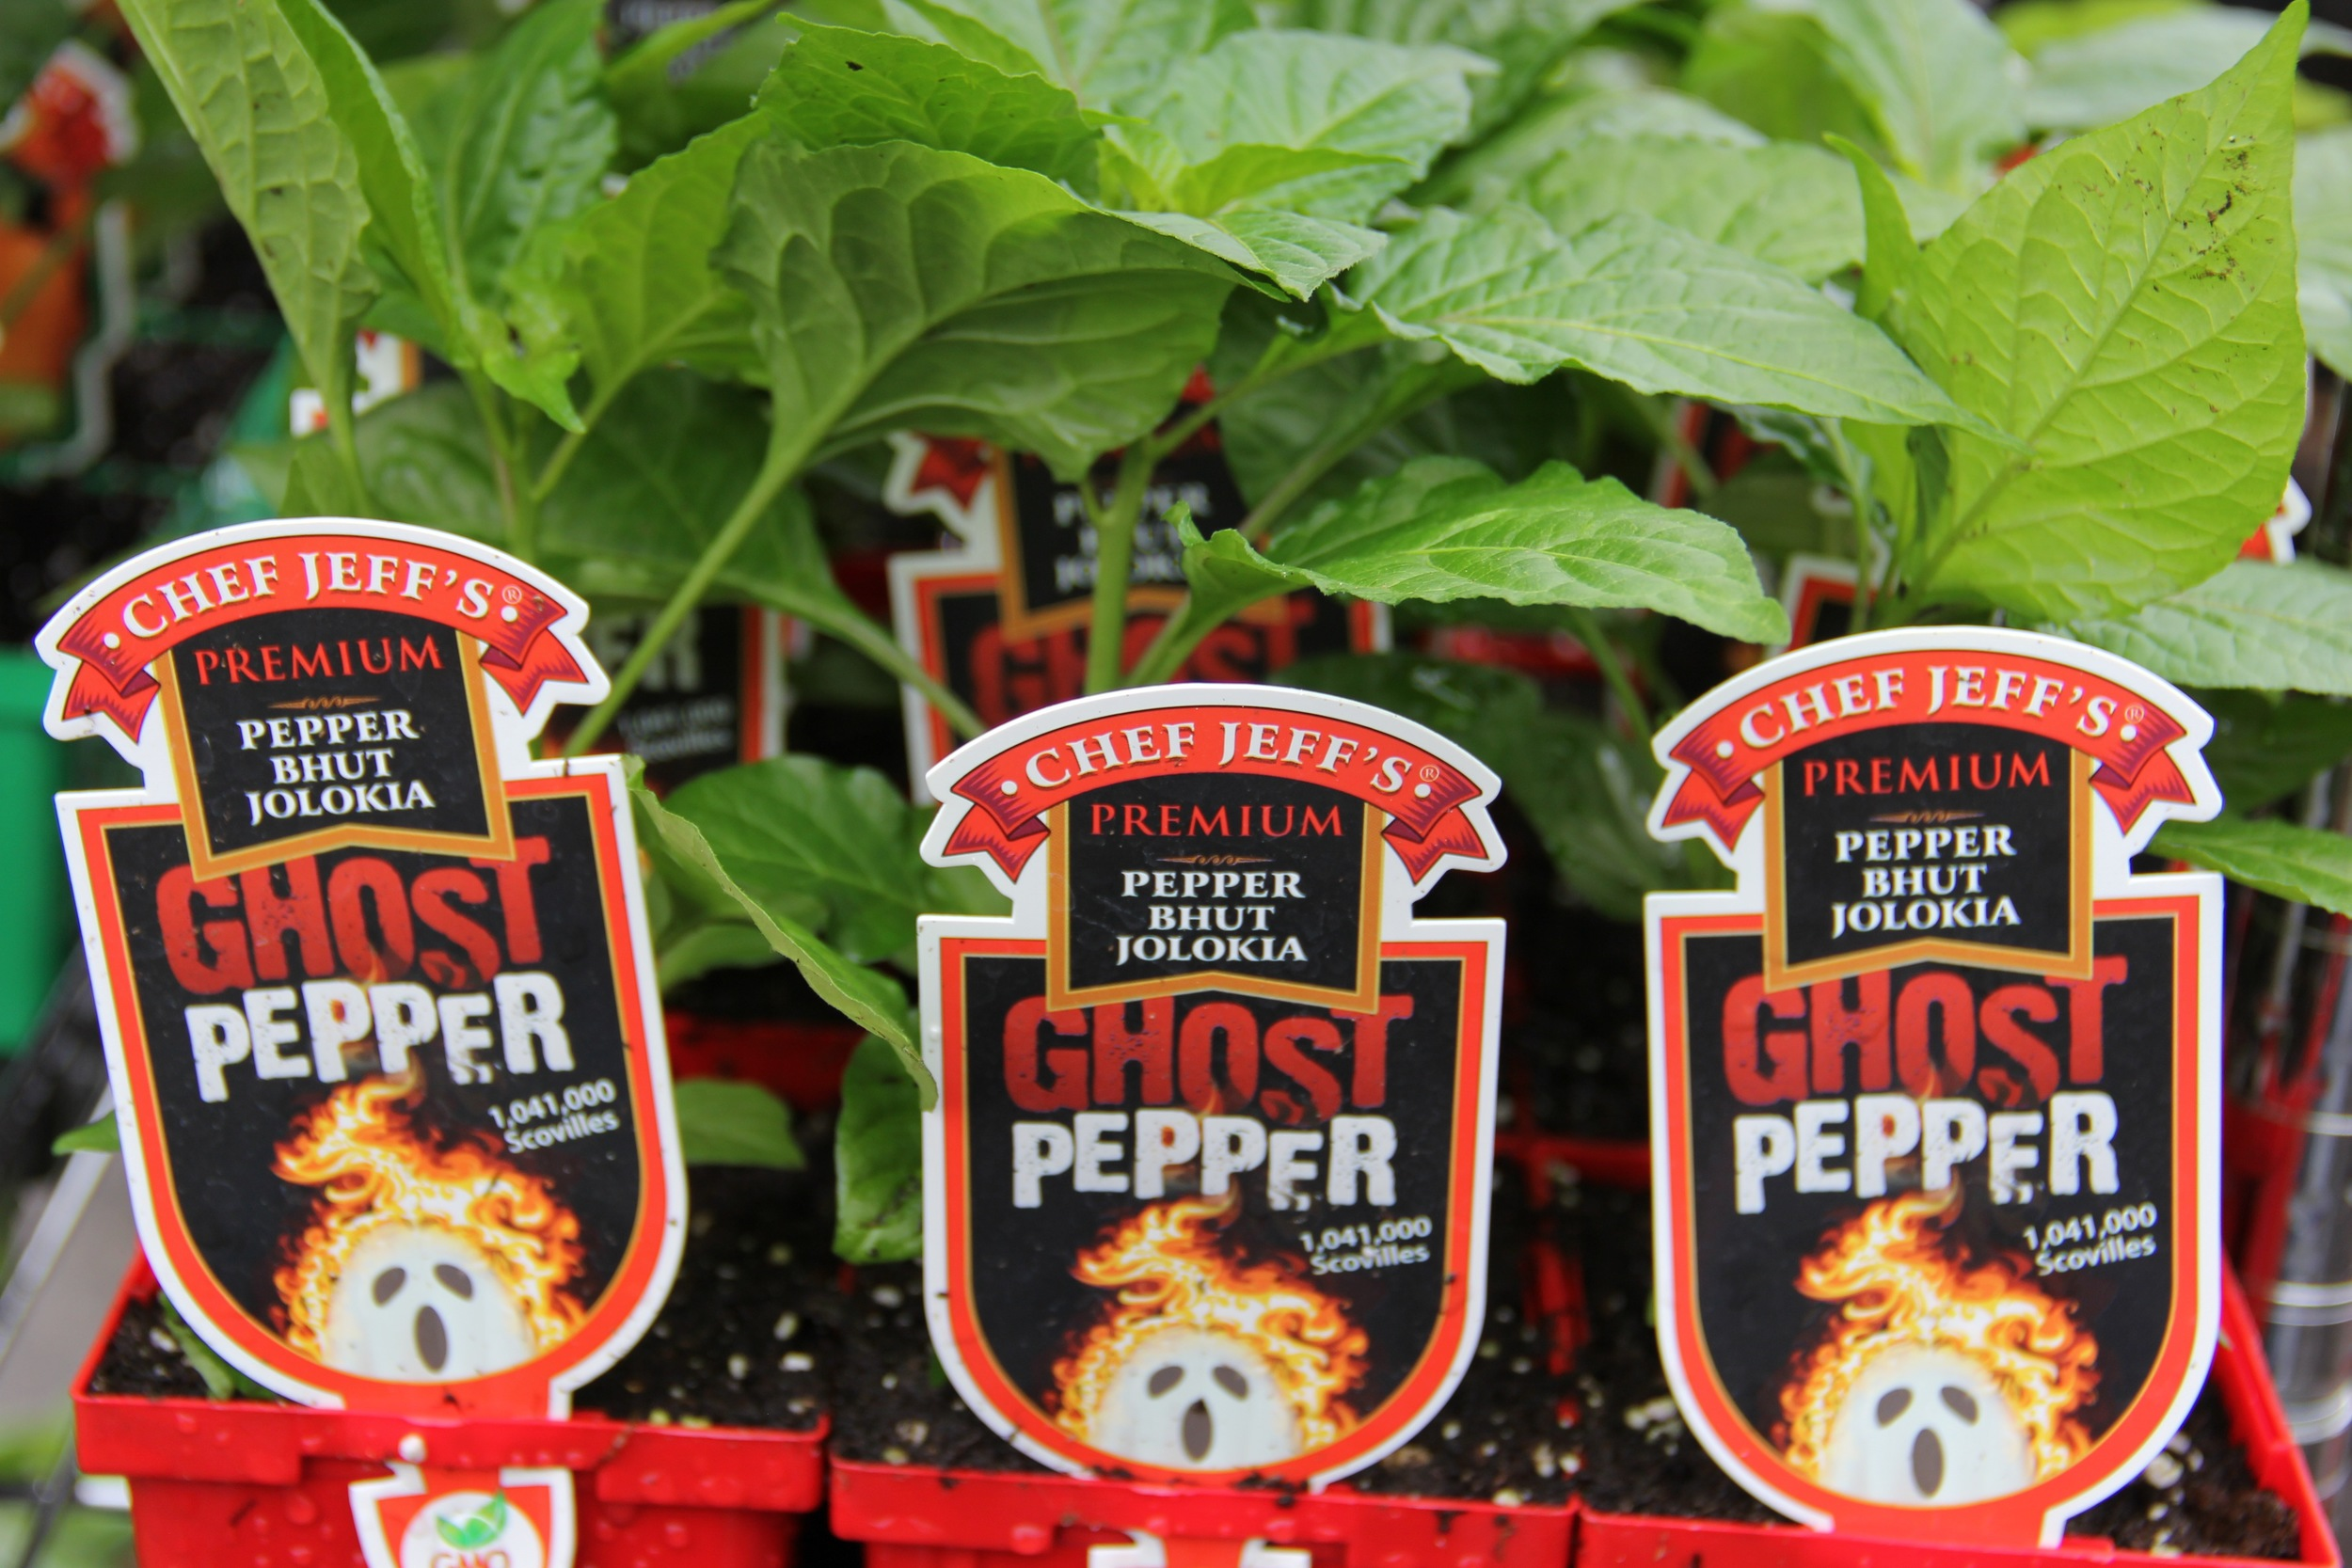 One of the hottest peppers on earth--grow some for yourself!